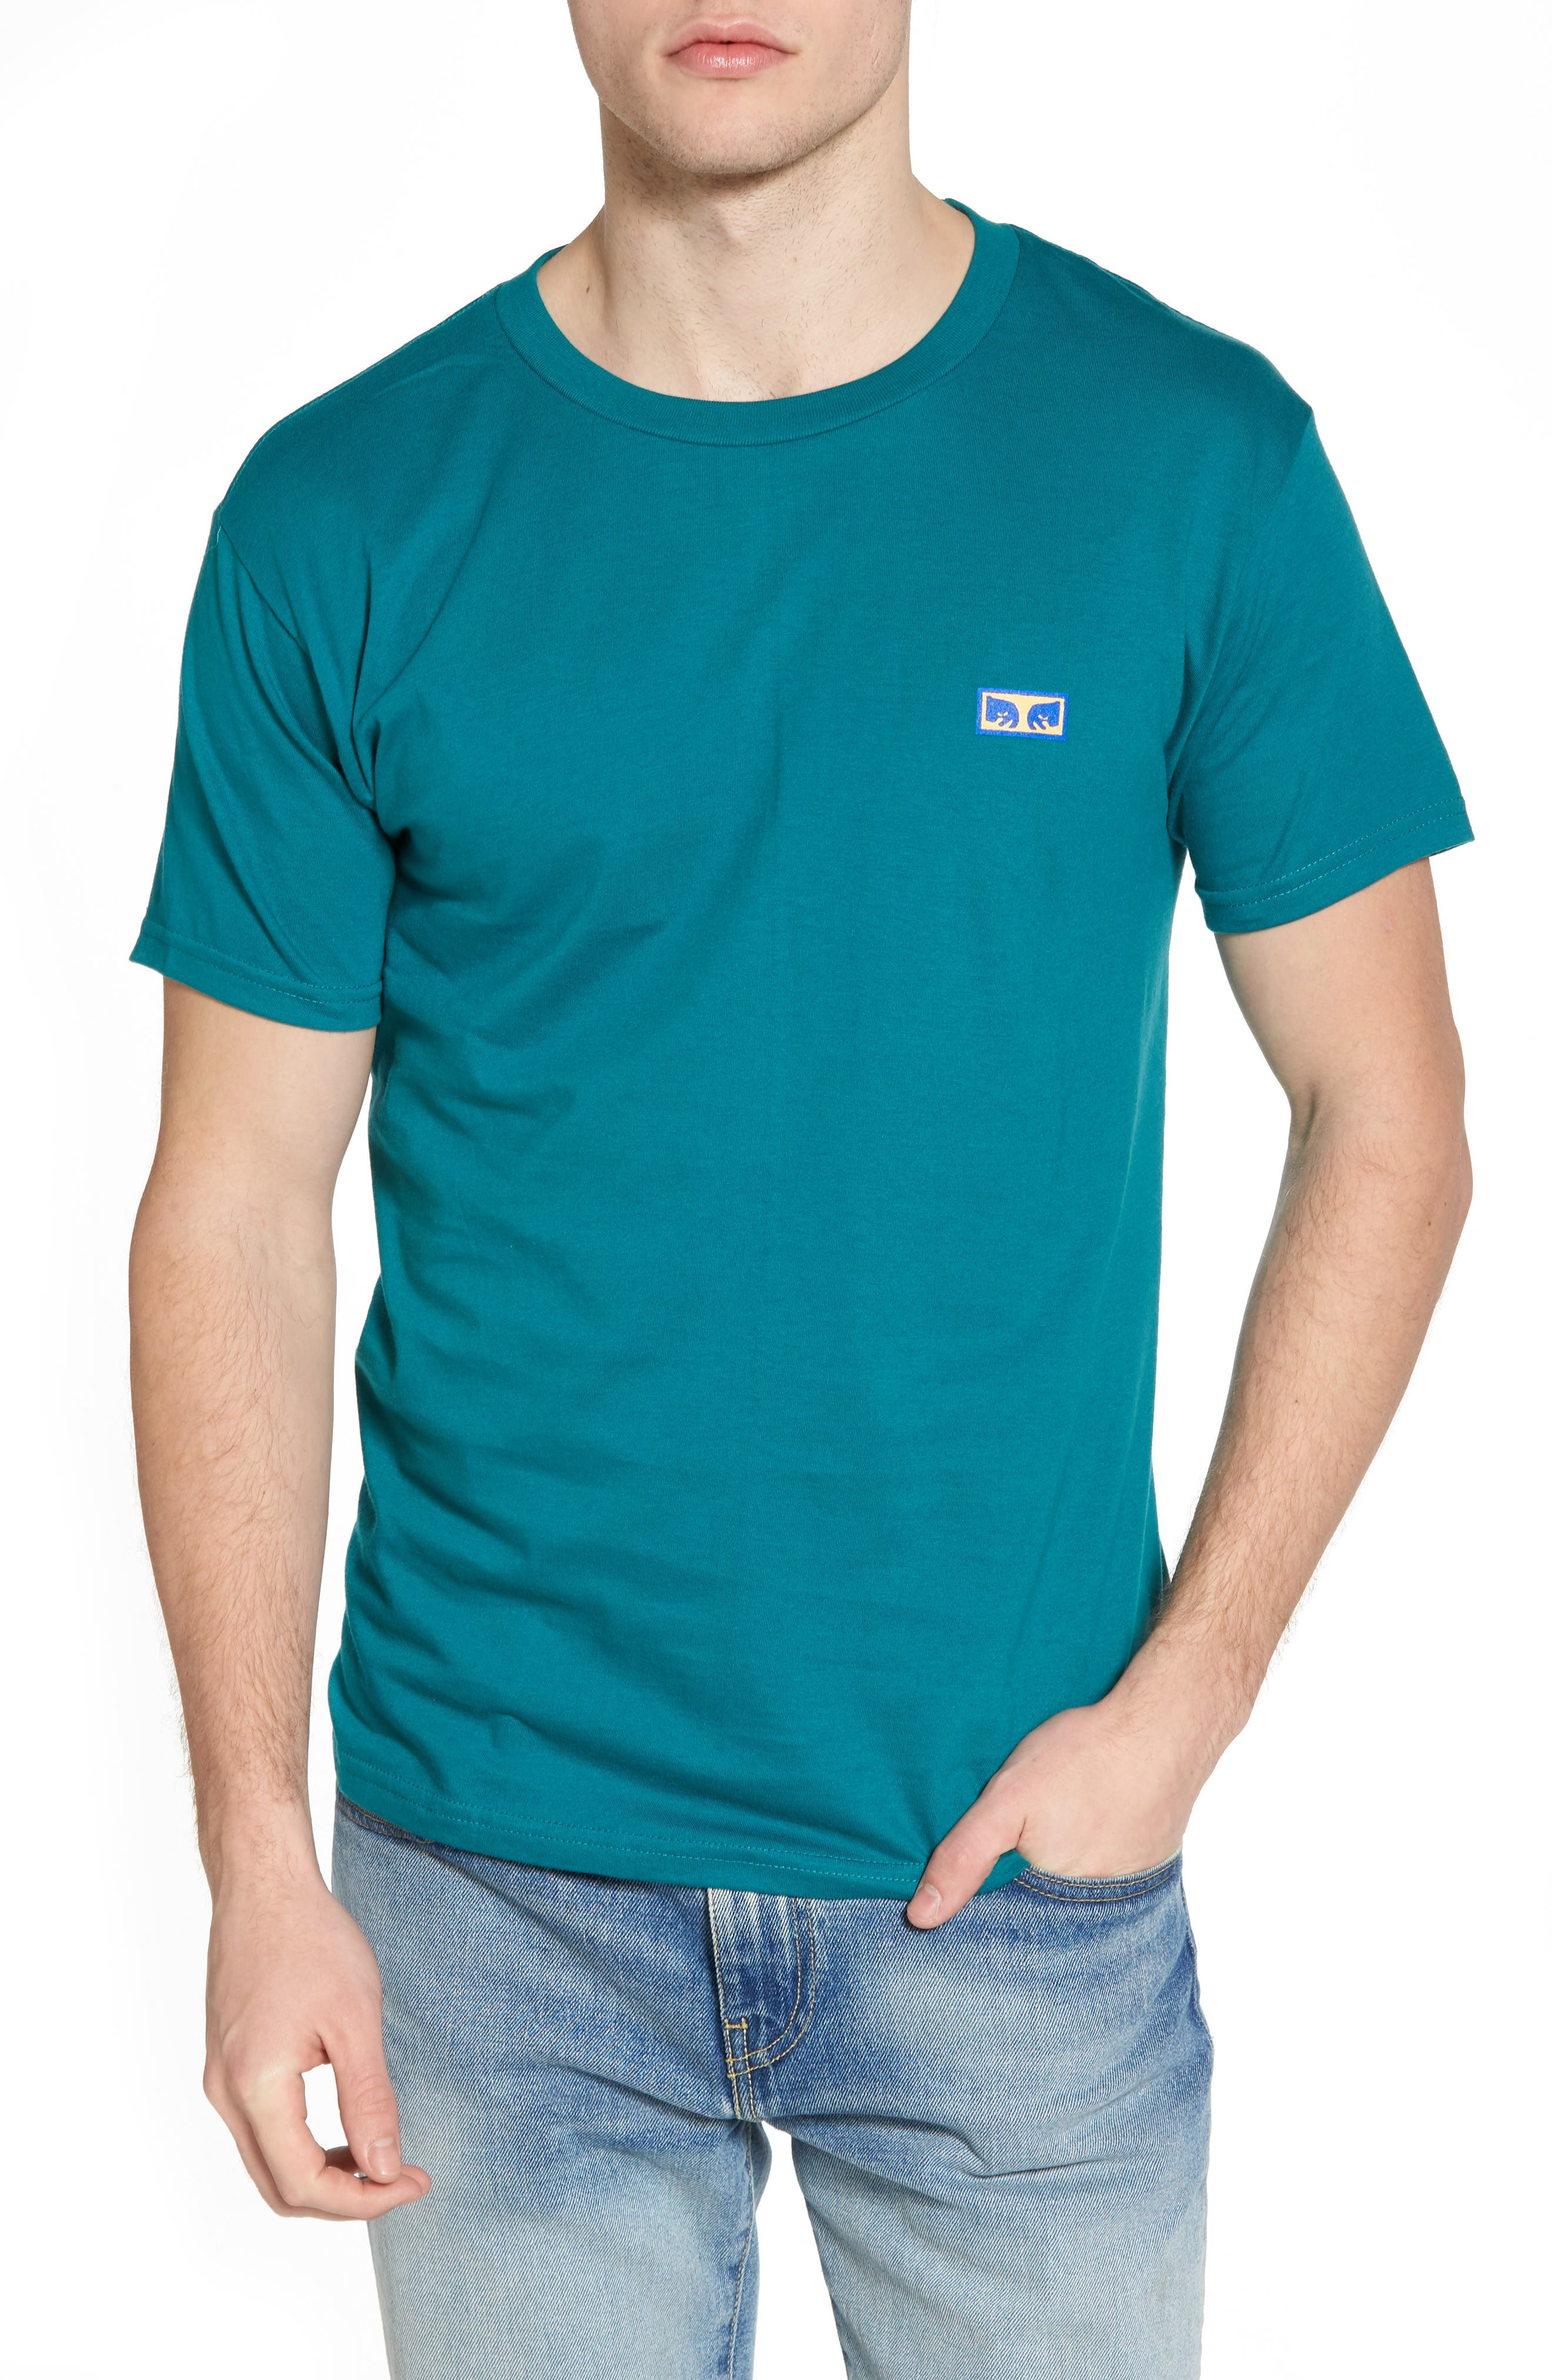 Flashback Graphic T-Shirt,                         Main,                         color, 445